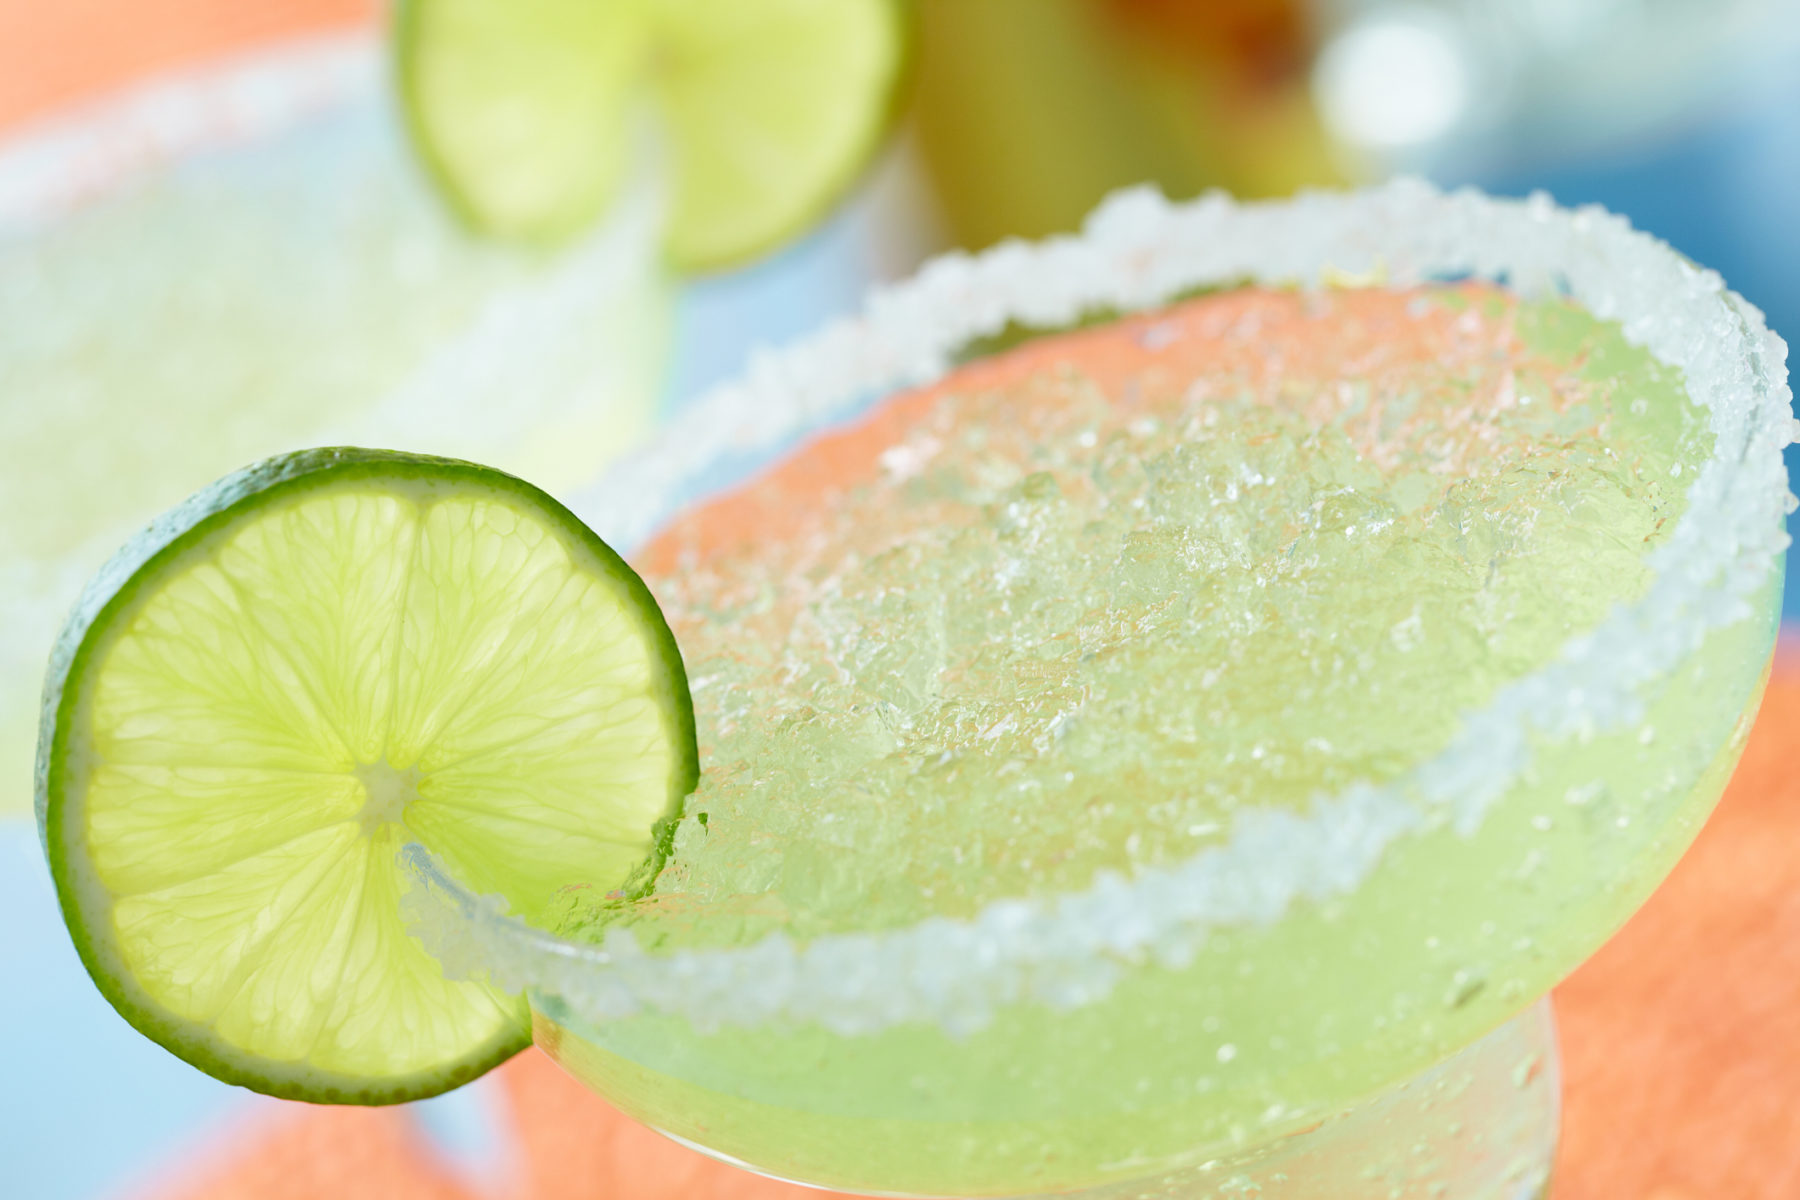 Frozen margarita with salted rim